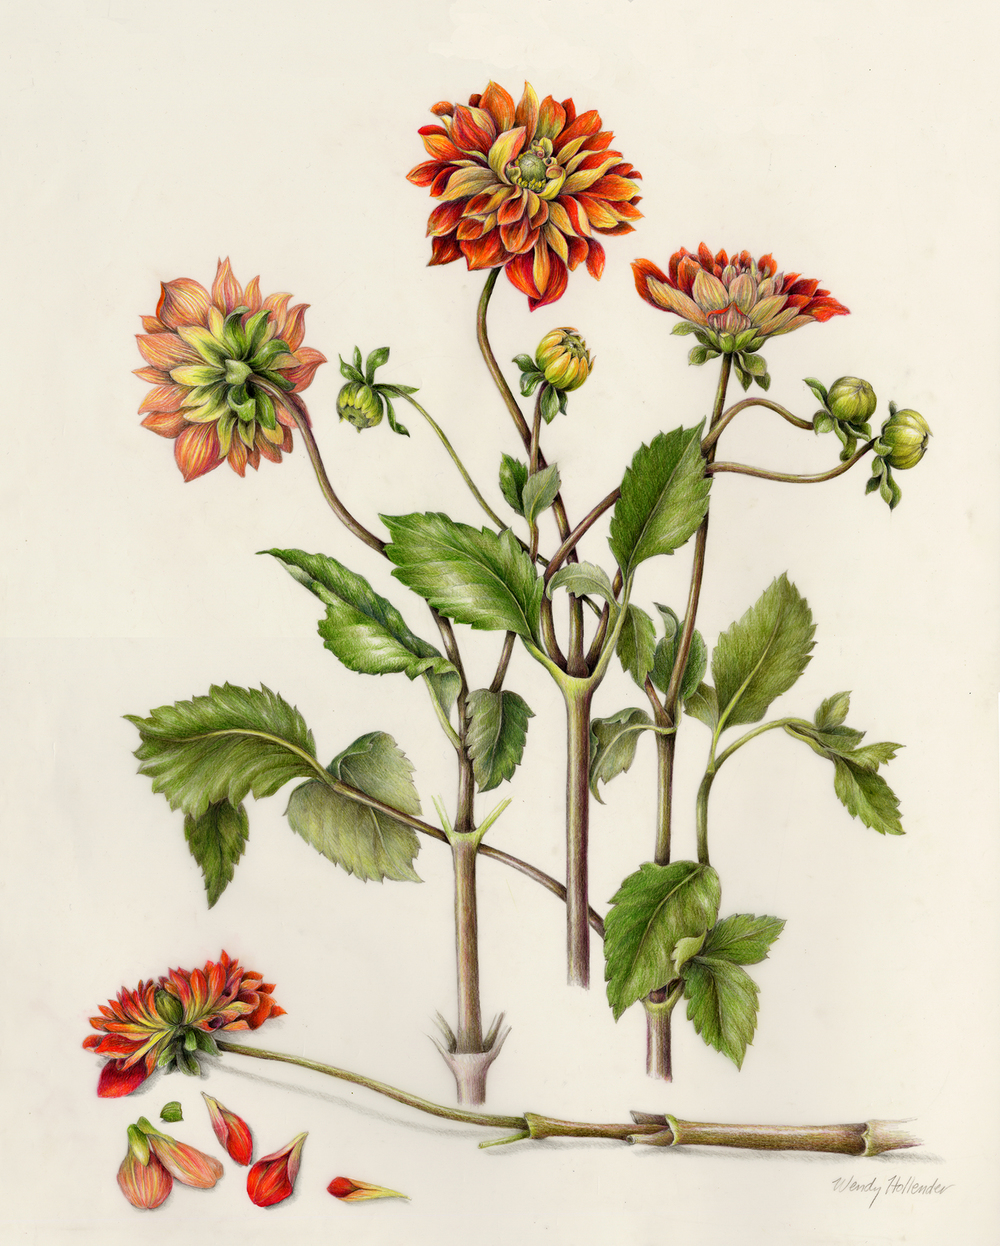 Flowers Gallery Full — Botanical Artist & Illustrator, Learn to draw ...